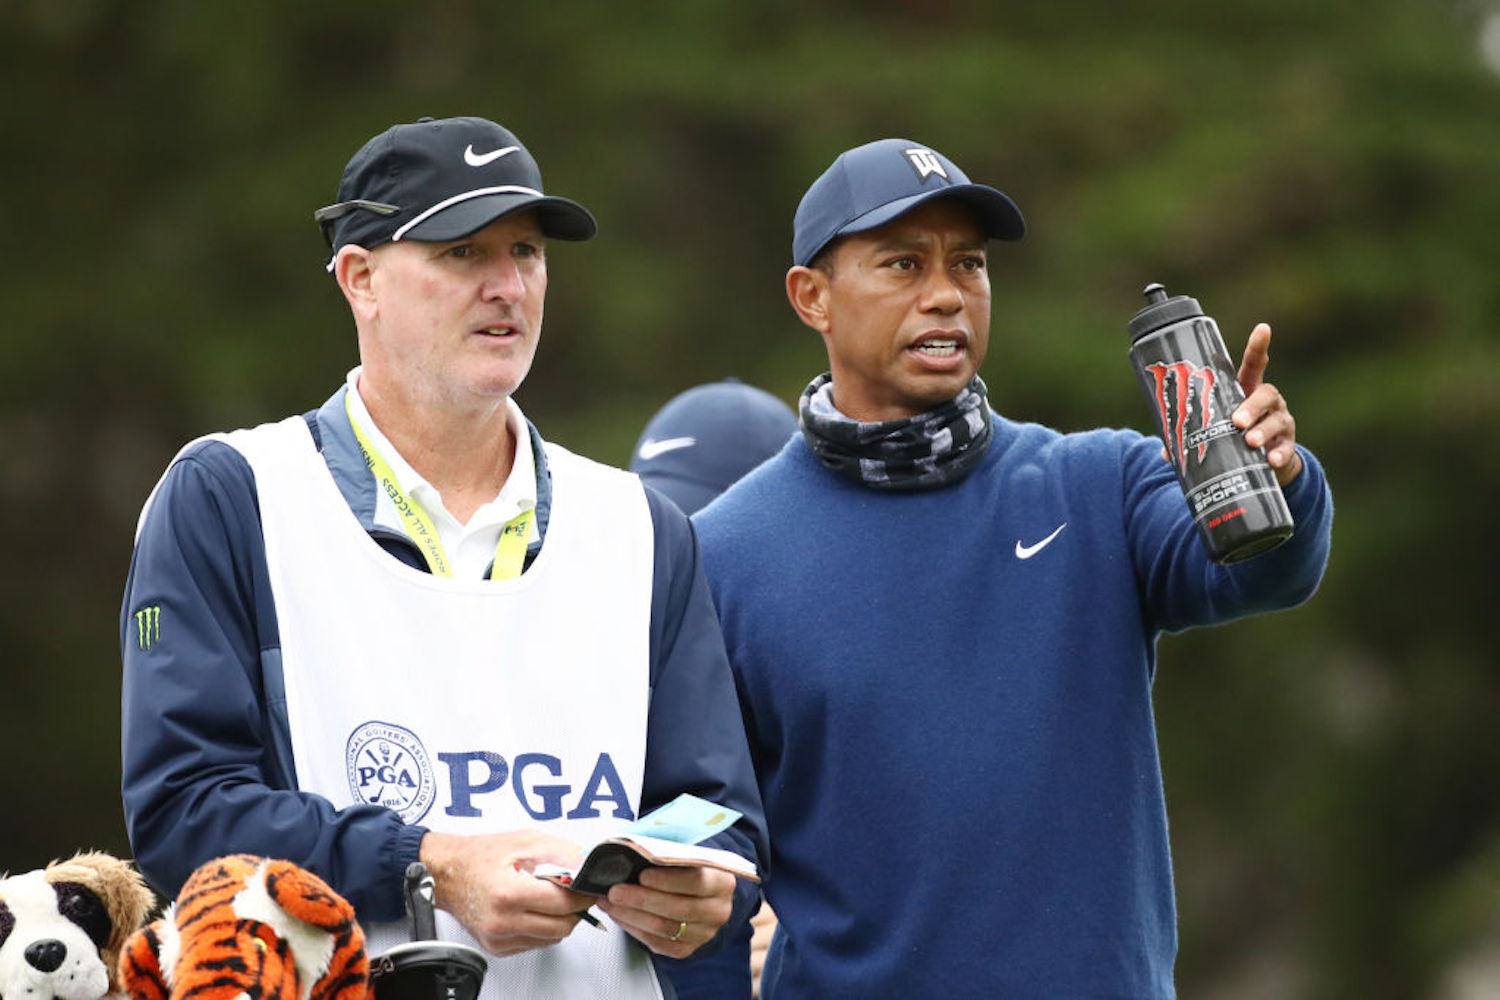 Everywhere Tiger Woods goes on a golf course, Joe LaCava follows. So, who is LaCava and how did he end up on Woods' bag?